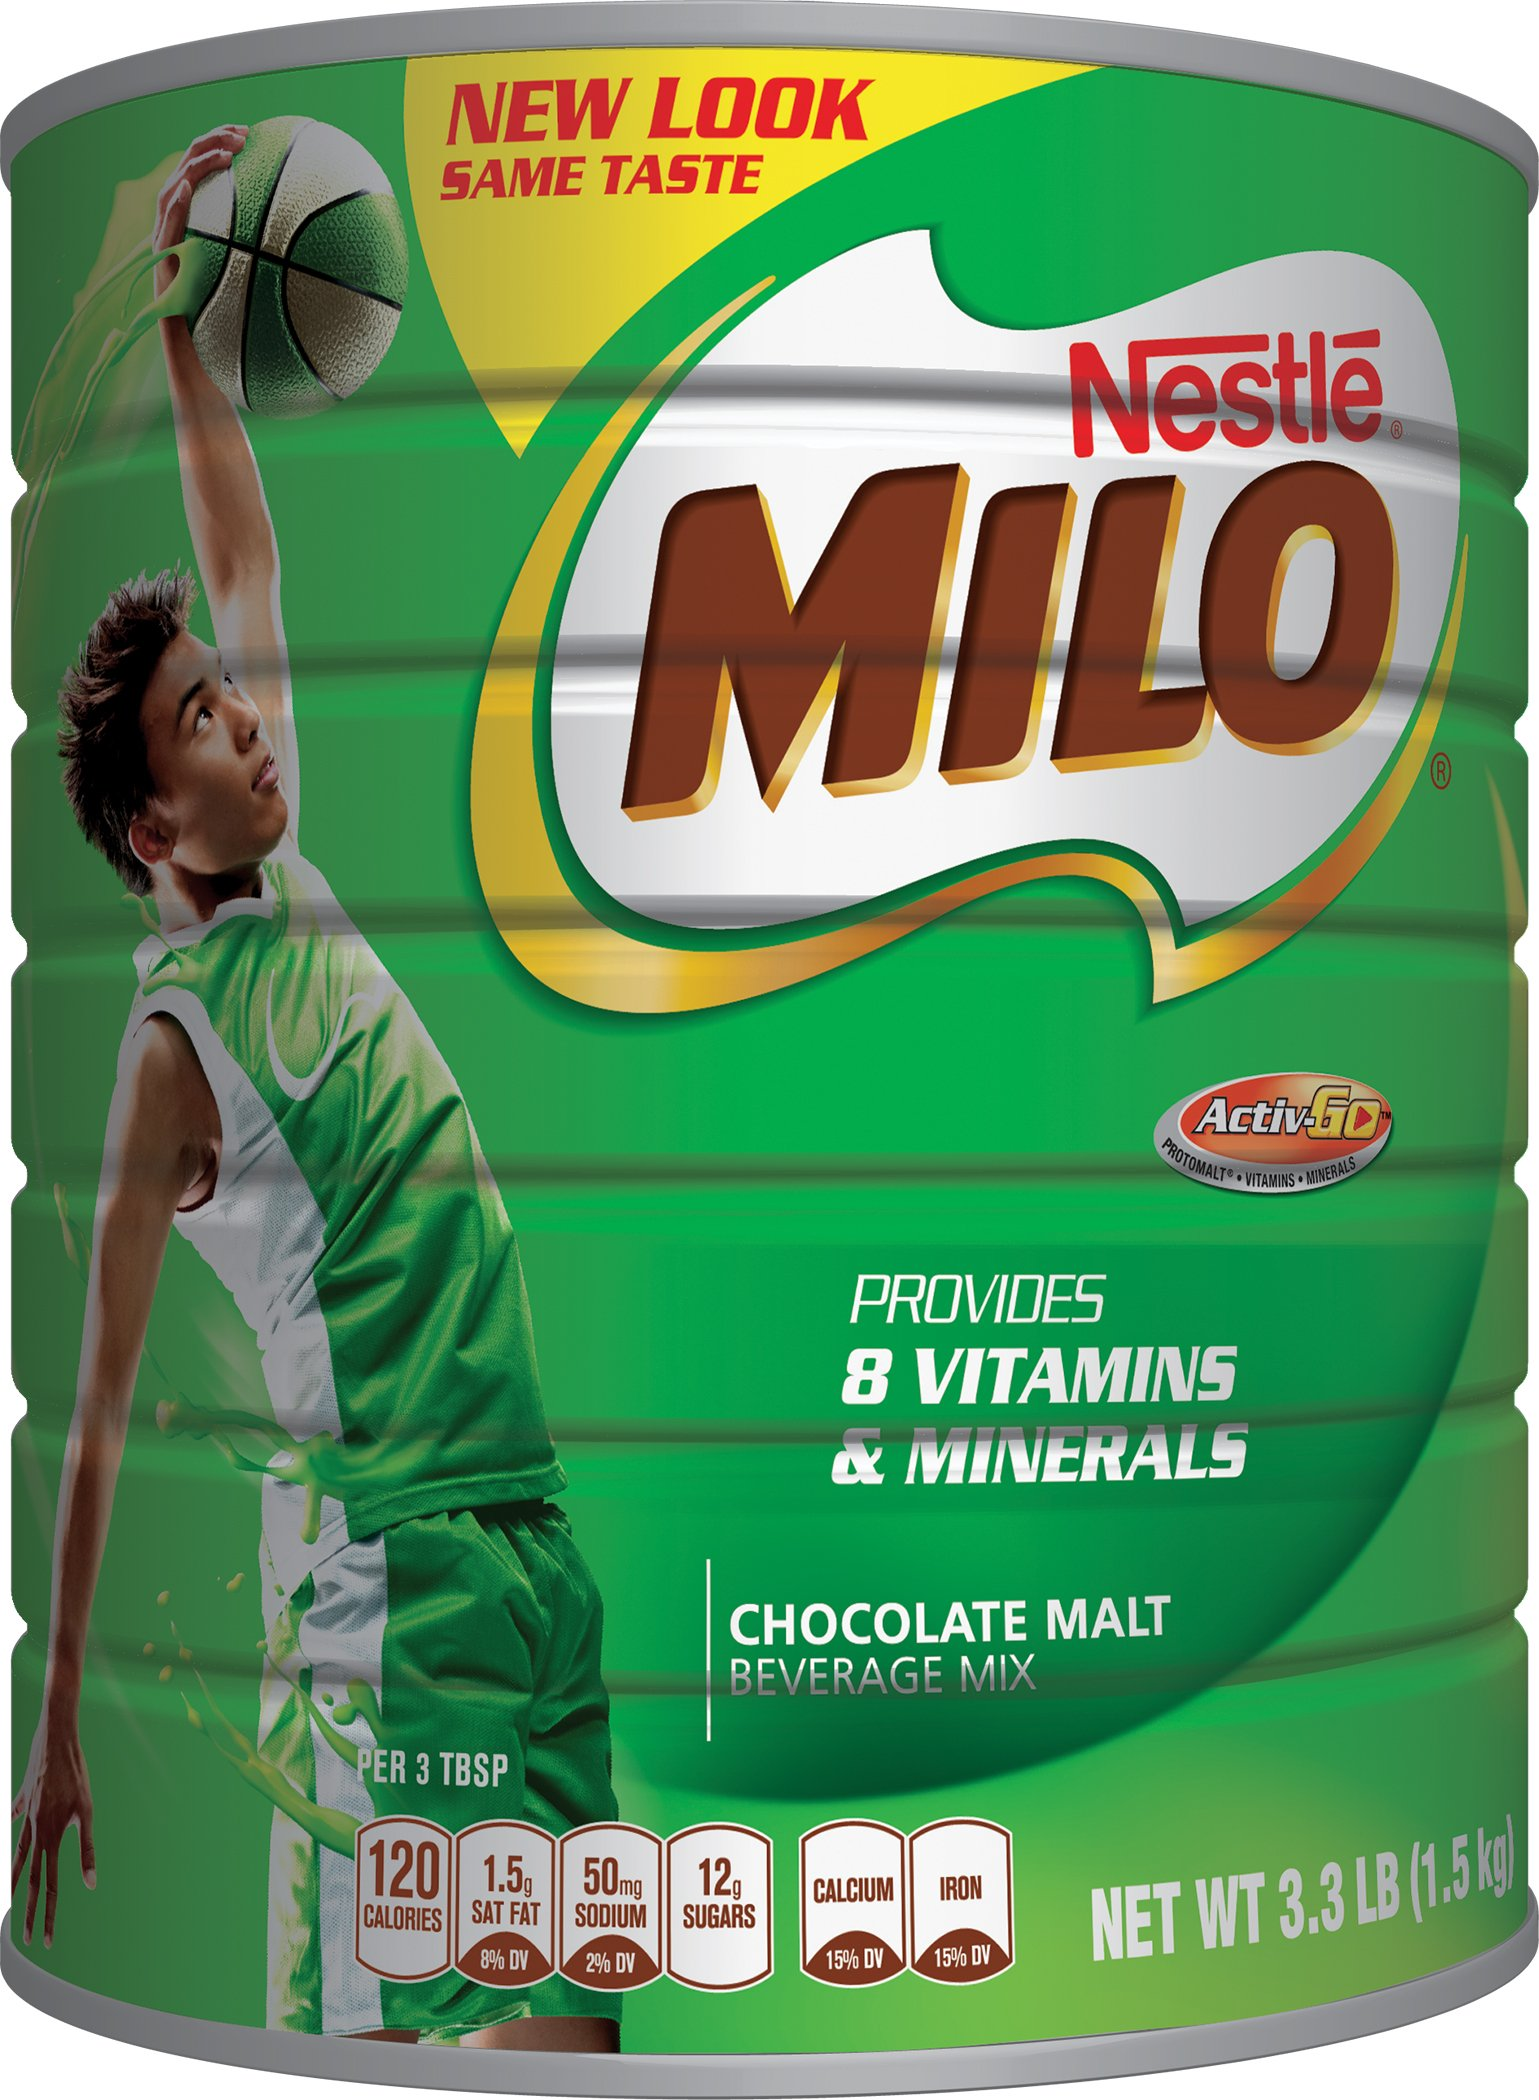 Nestle Nido Fortificada Dry Milk 563 Oz Canister Chilschool Vanila 800 Gr 2 Box Milo Chocolate Malt Beverage Mix Jumbo 33 Pound Can 15kg